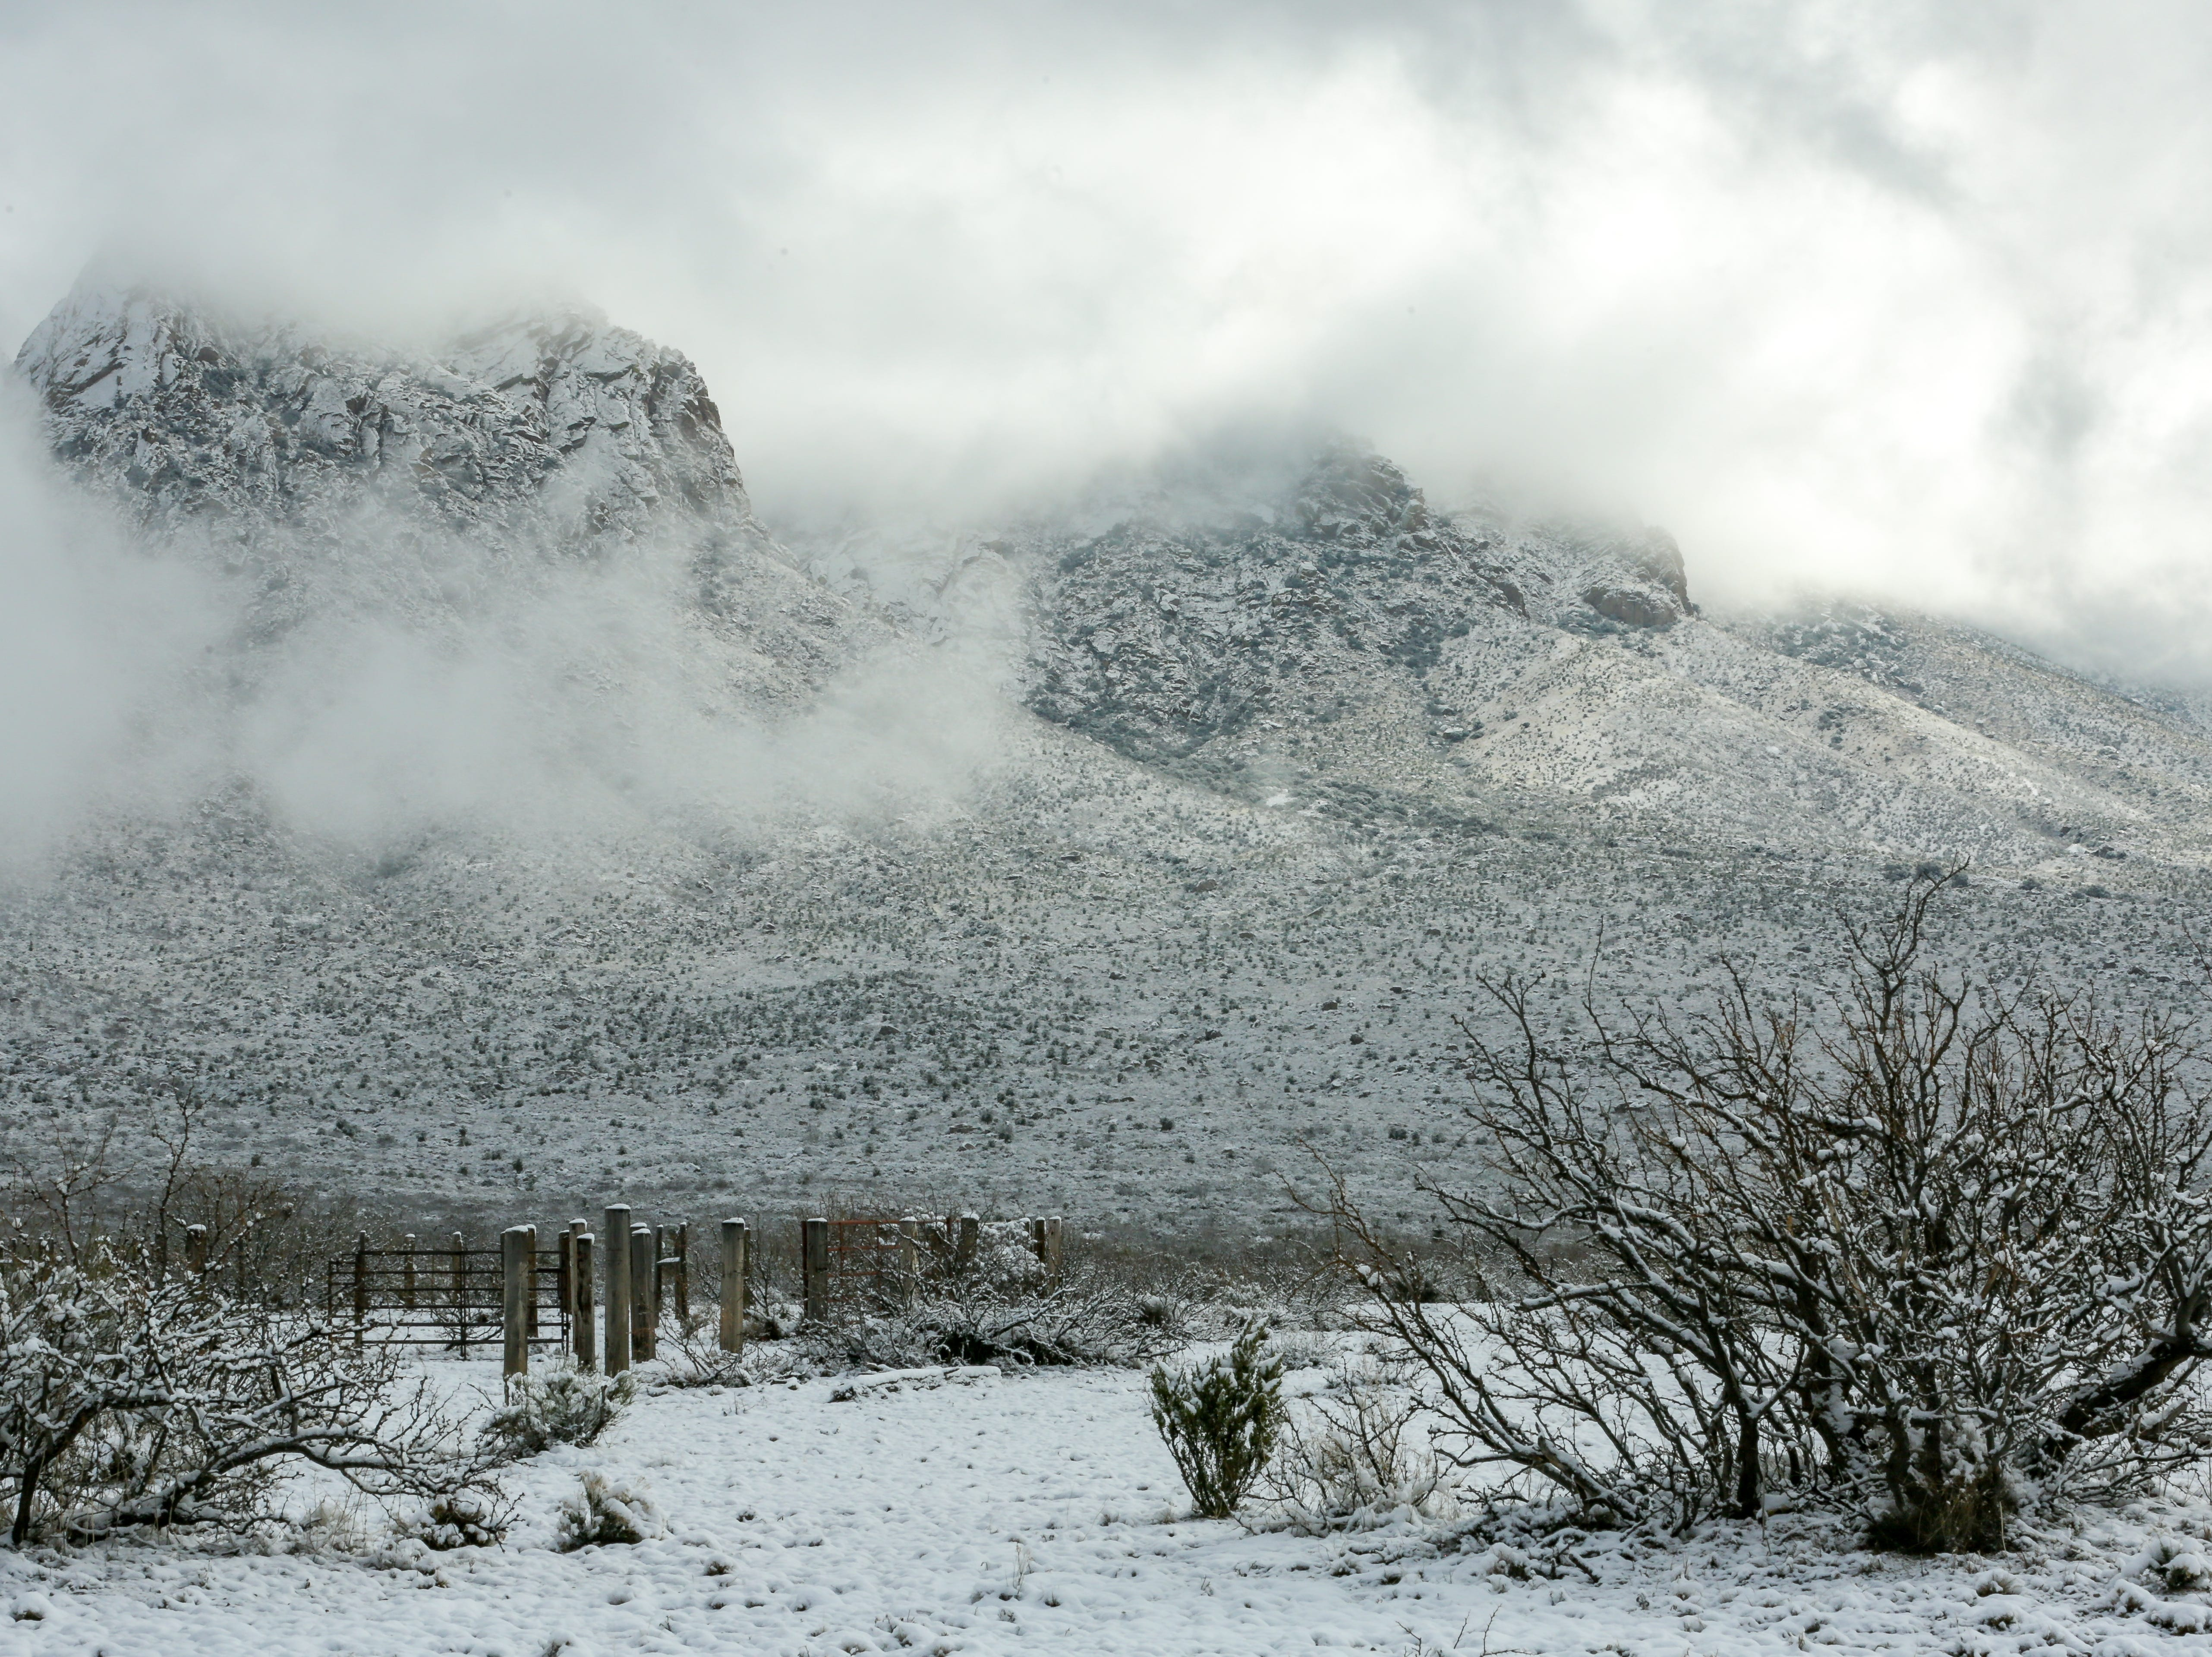 The Organ Mountains are covered with snow on Saturday Dec. 29, 2019.